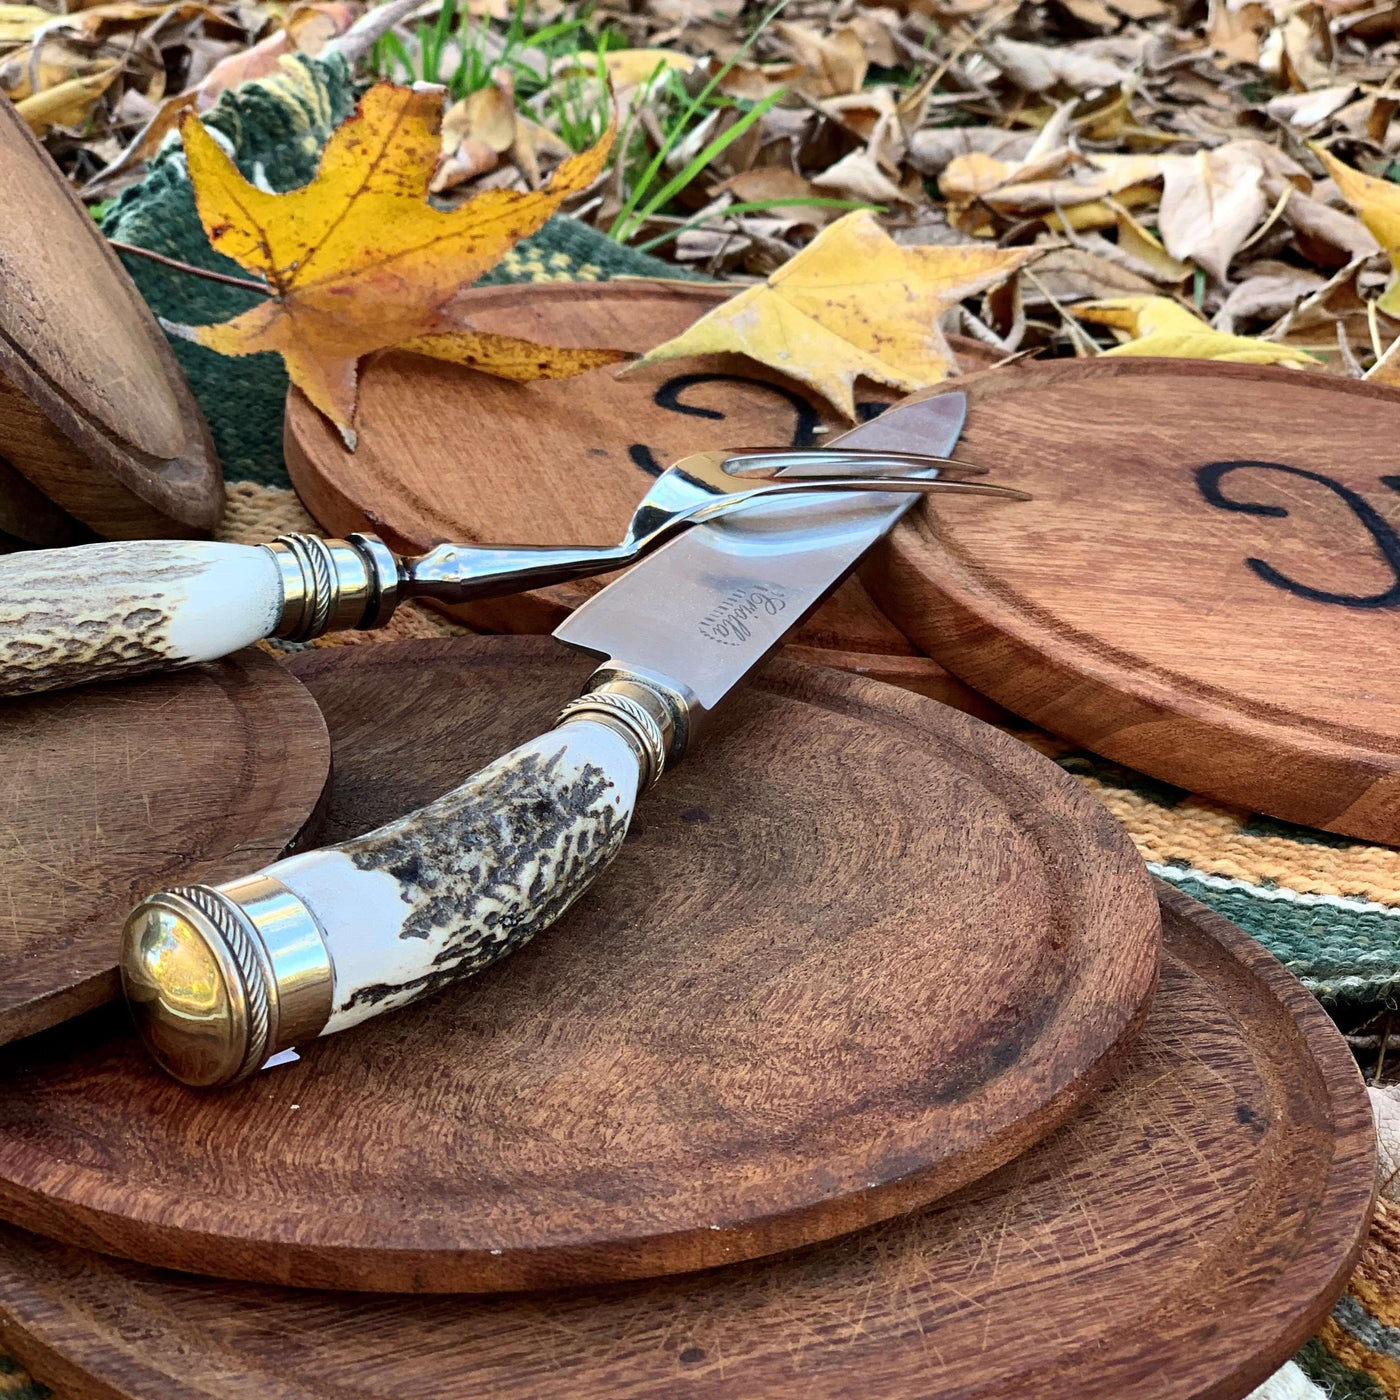 Handmade carving set stainless steel blades for steaks